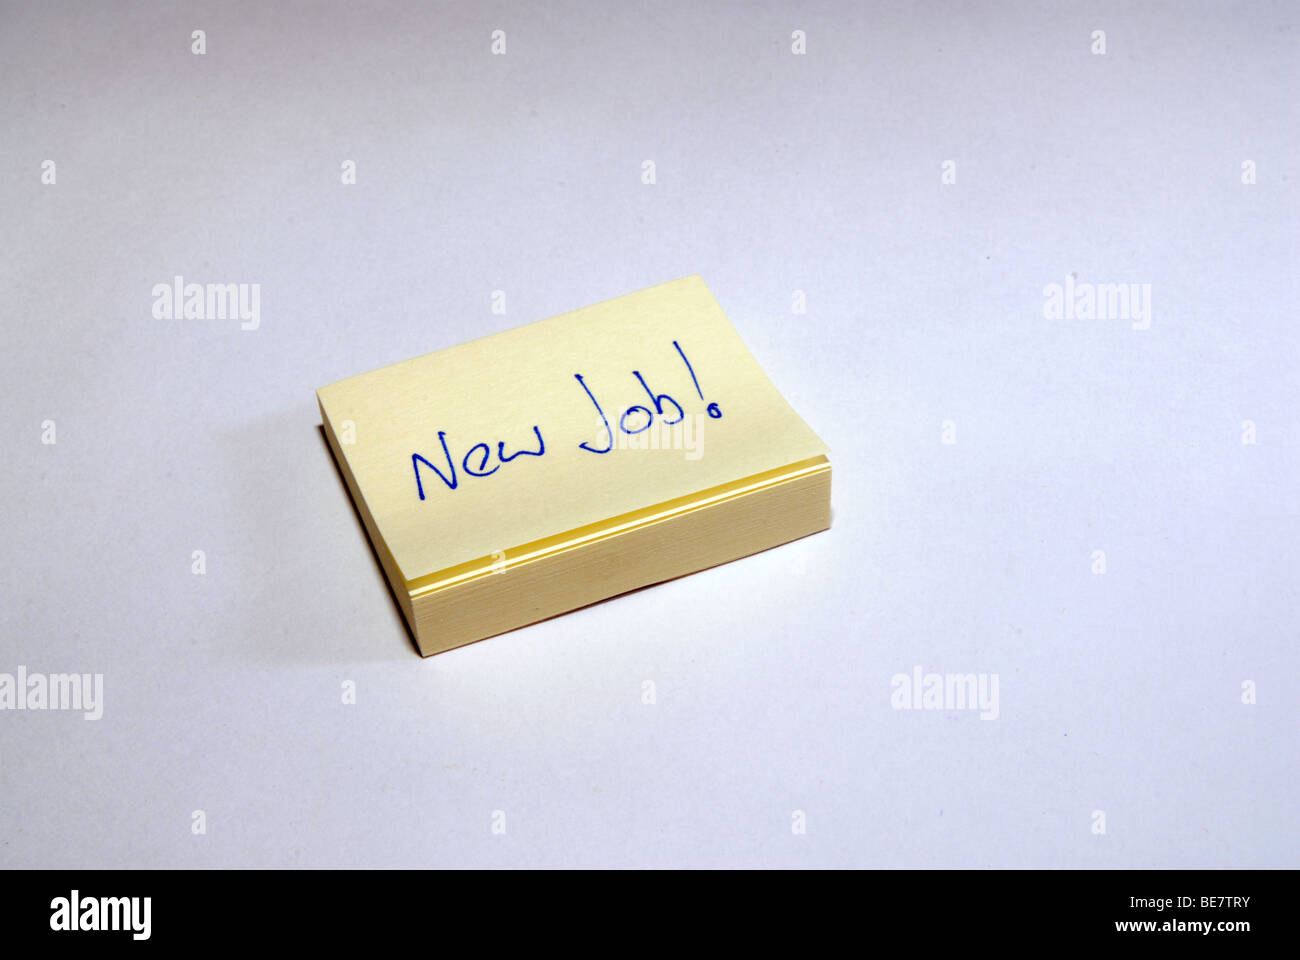 Get a New Job reminder on a post it note - Stock Image